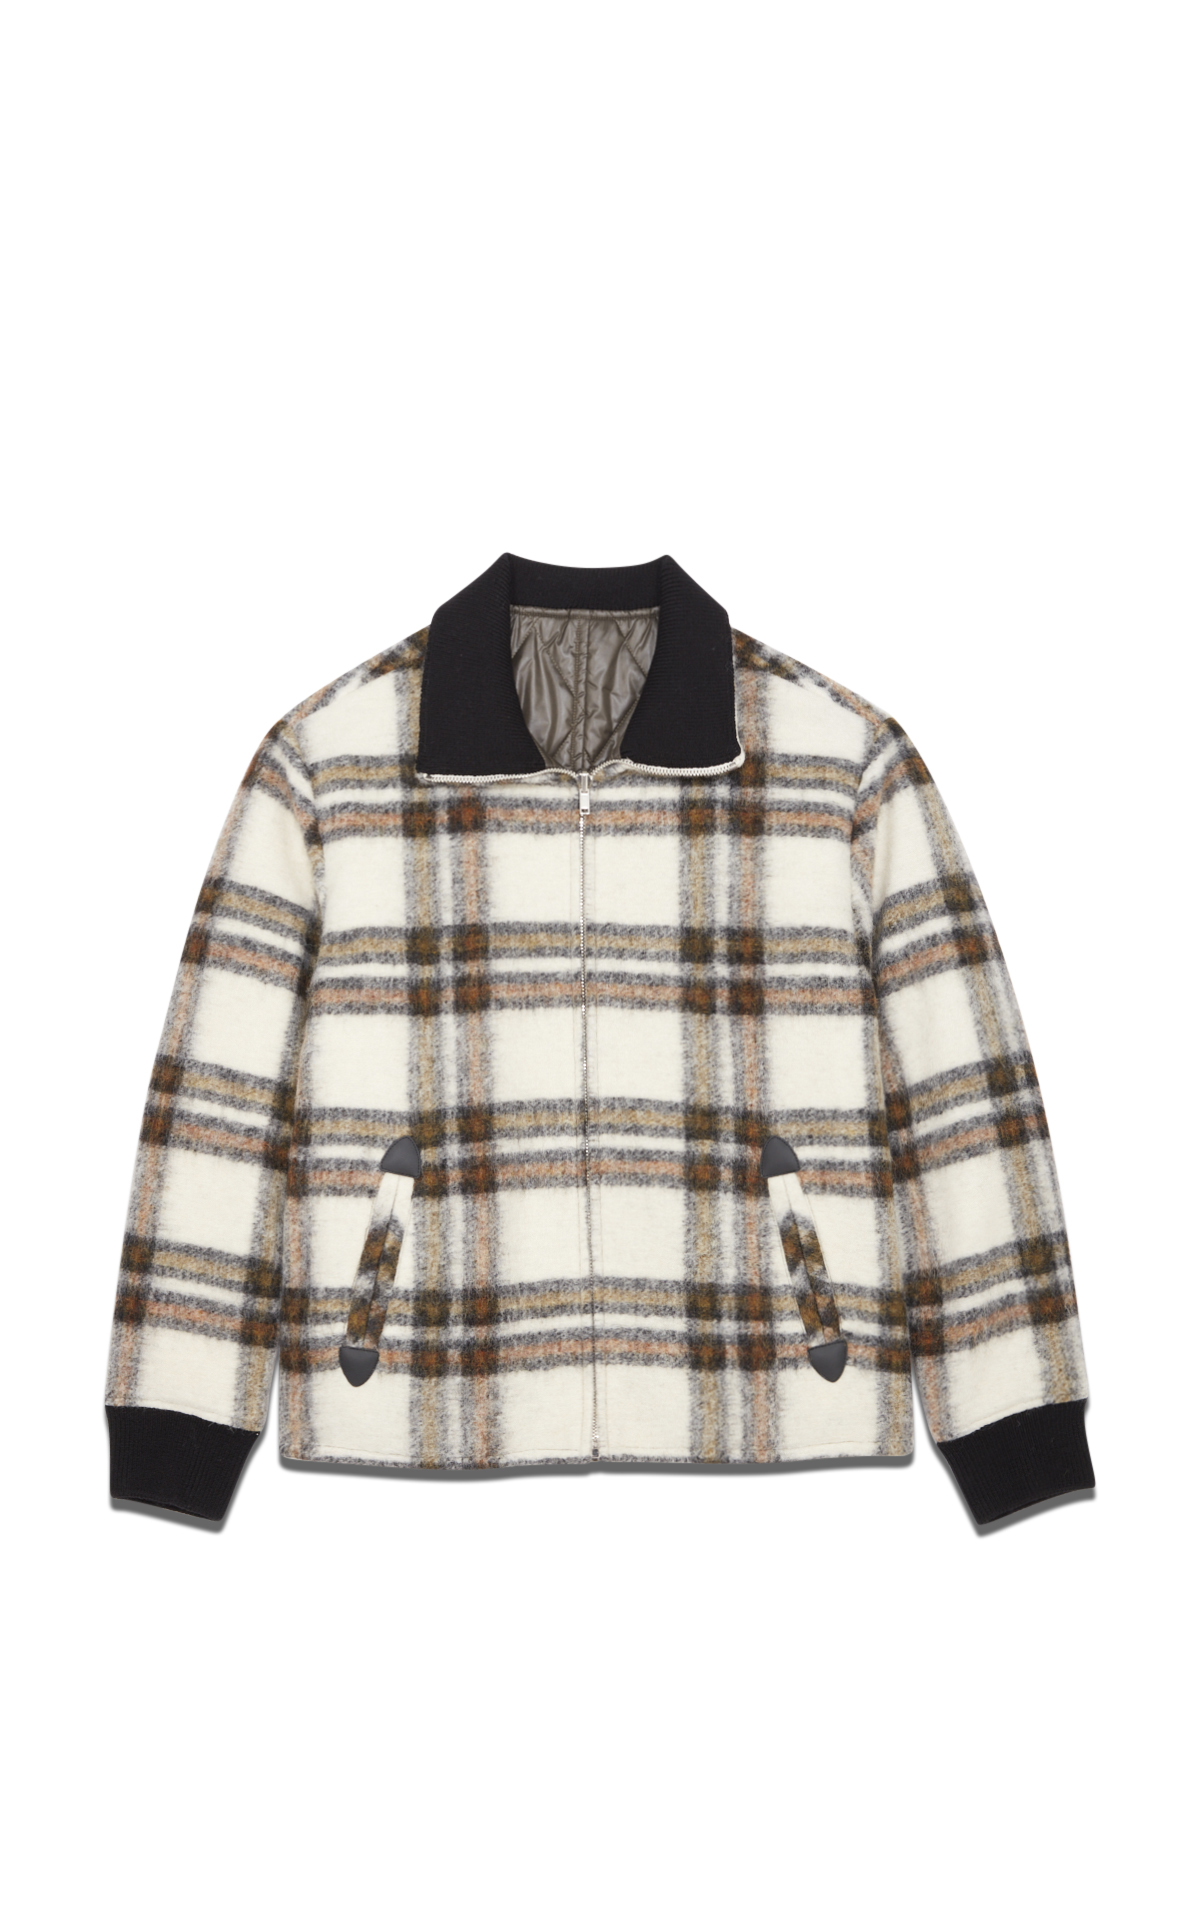 Isabel Marant Men's khaki checked coat*